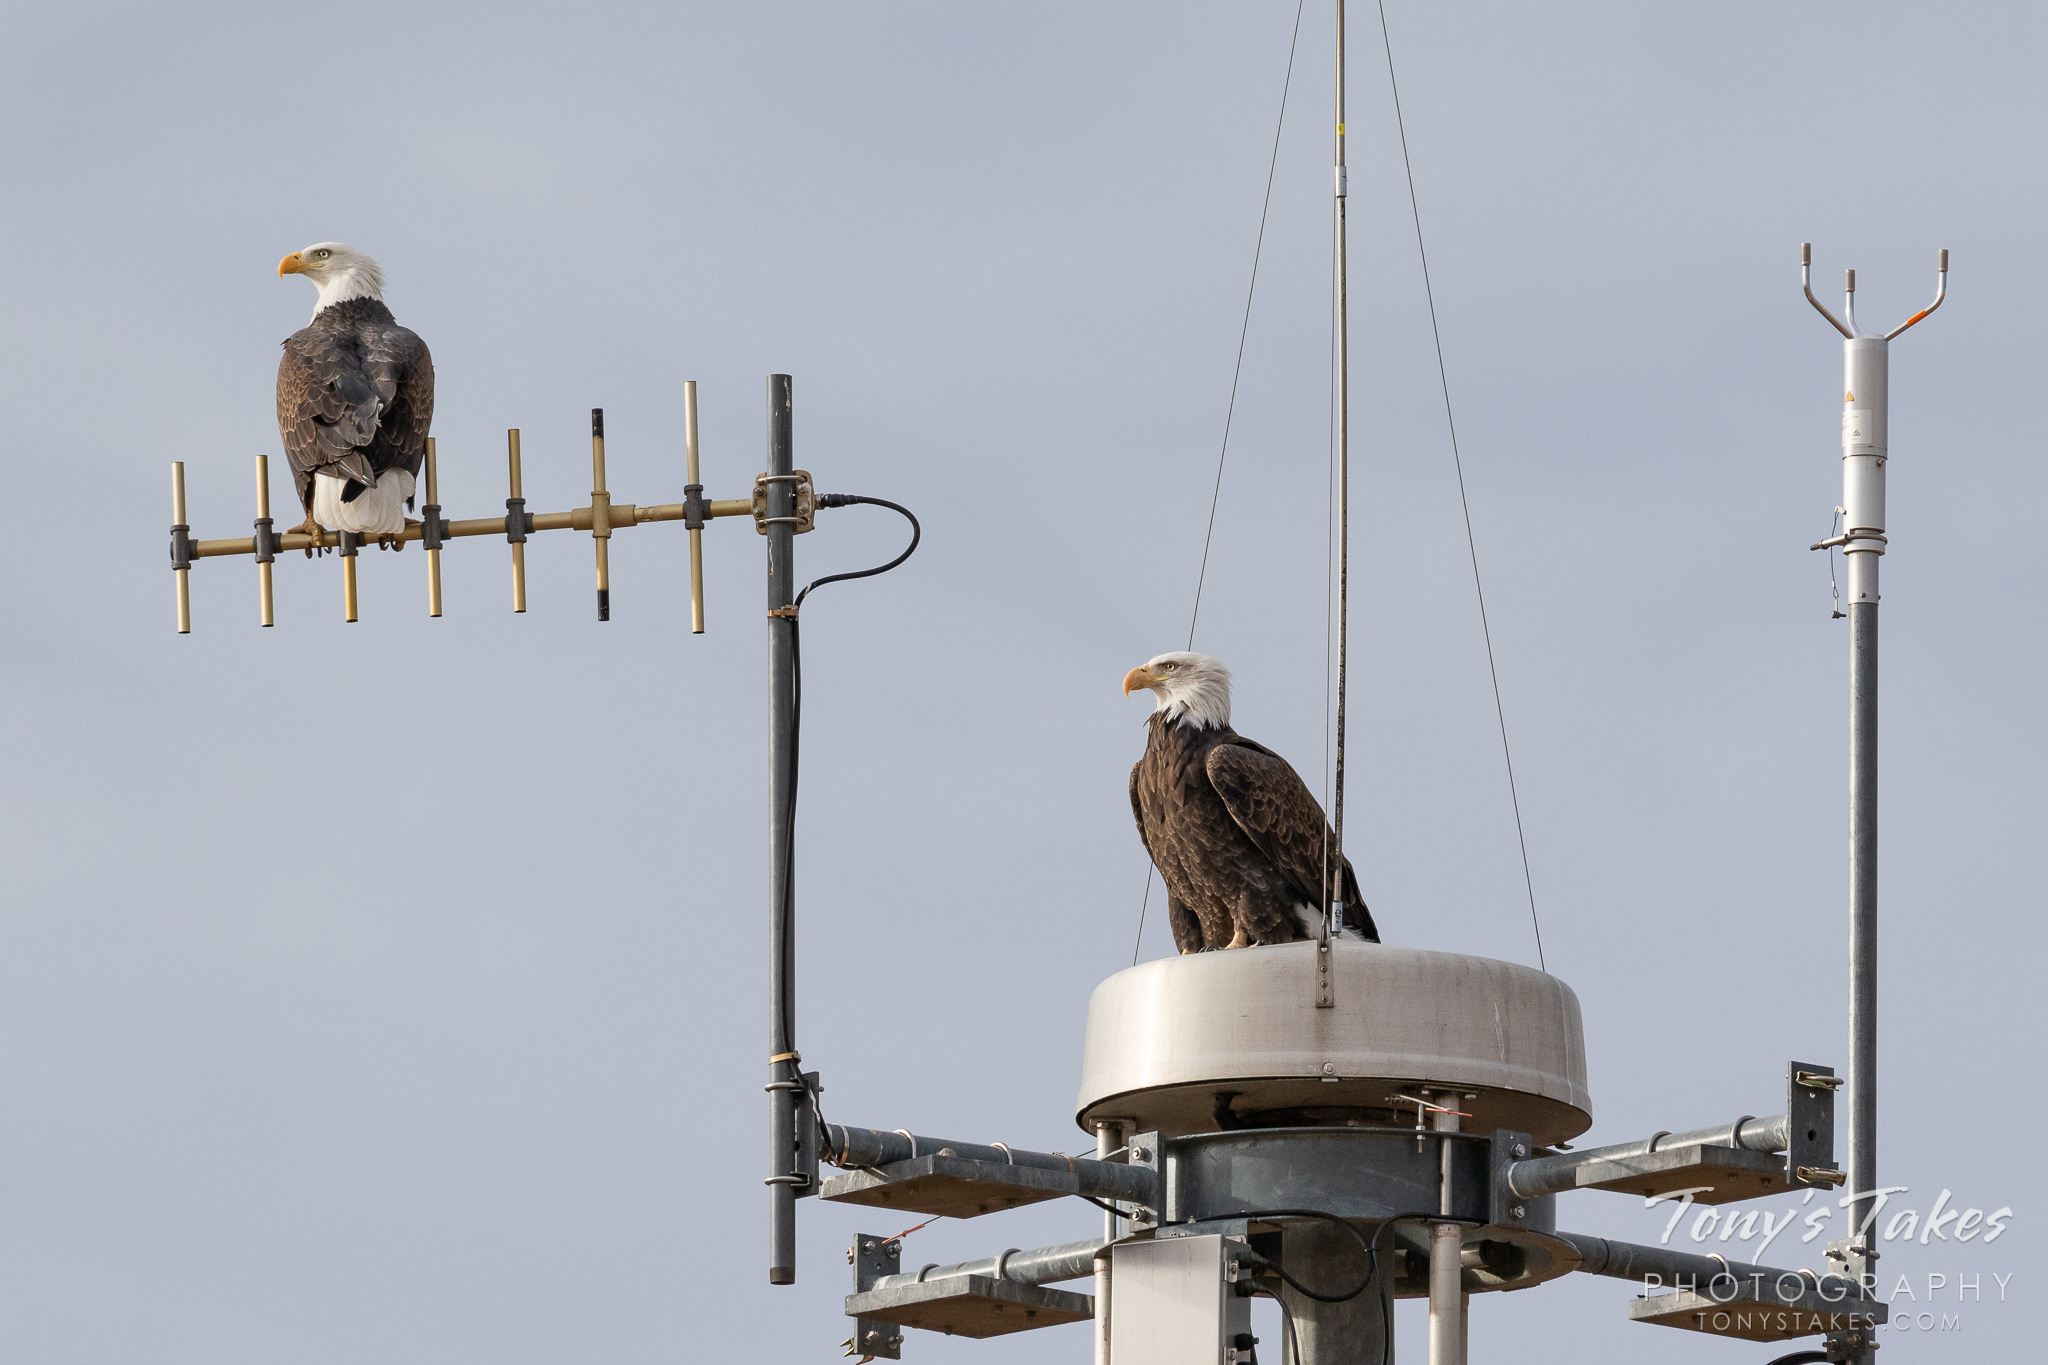 Bald Eagle pair keeping watch on air traffic